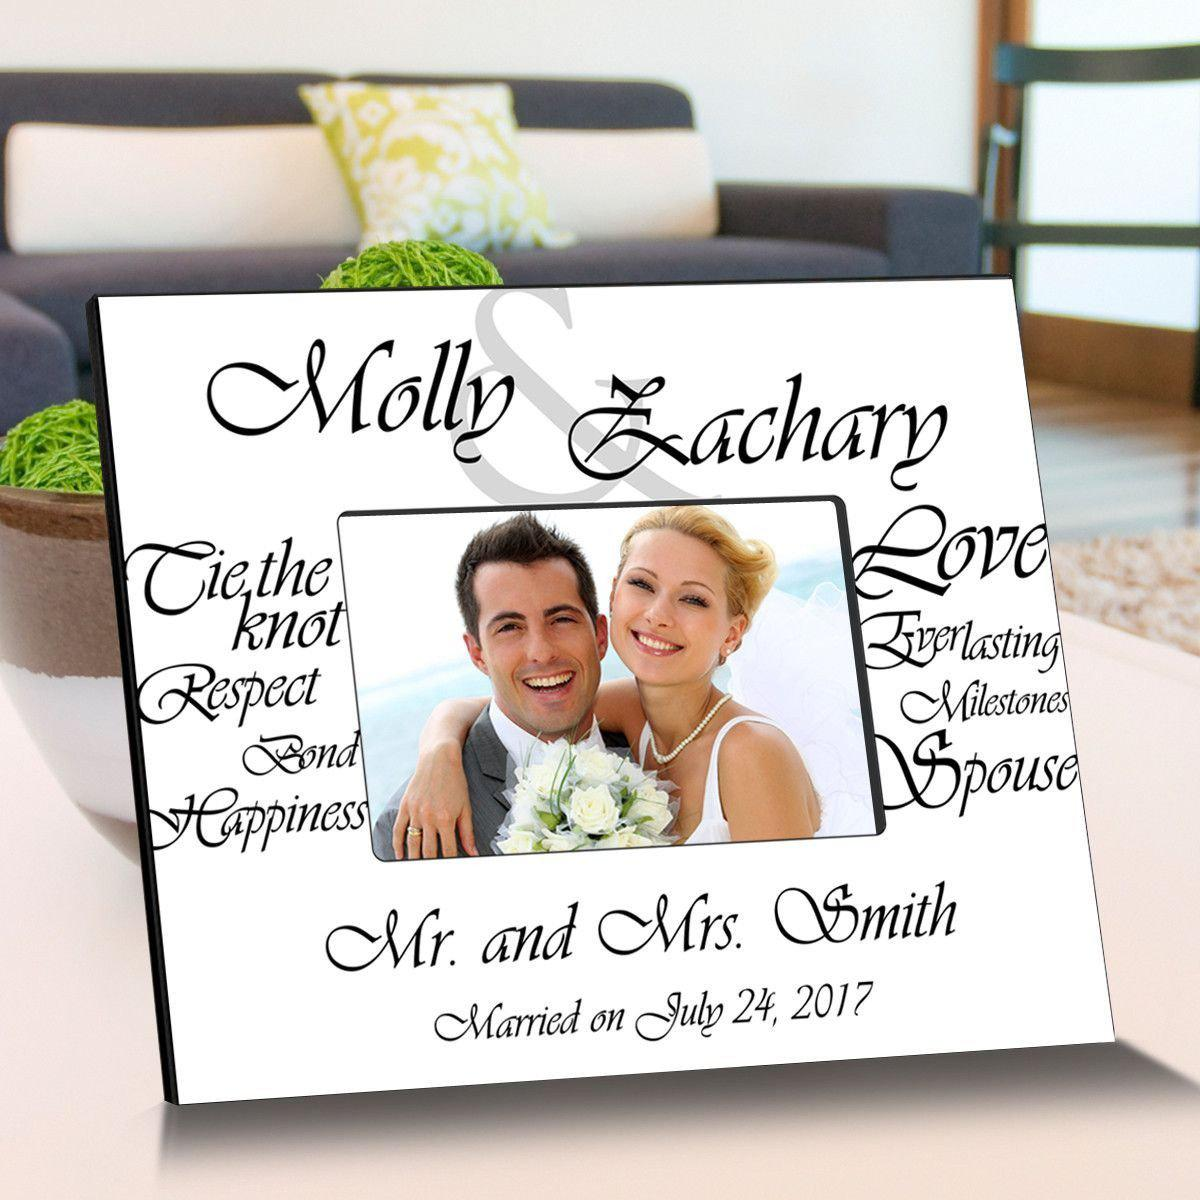 Personalized-Everlasting-Love-Wooden-Picture-Frames